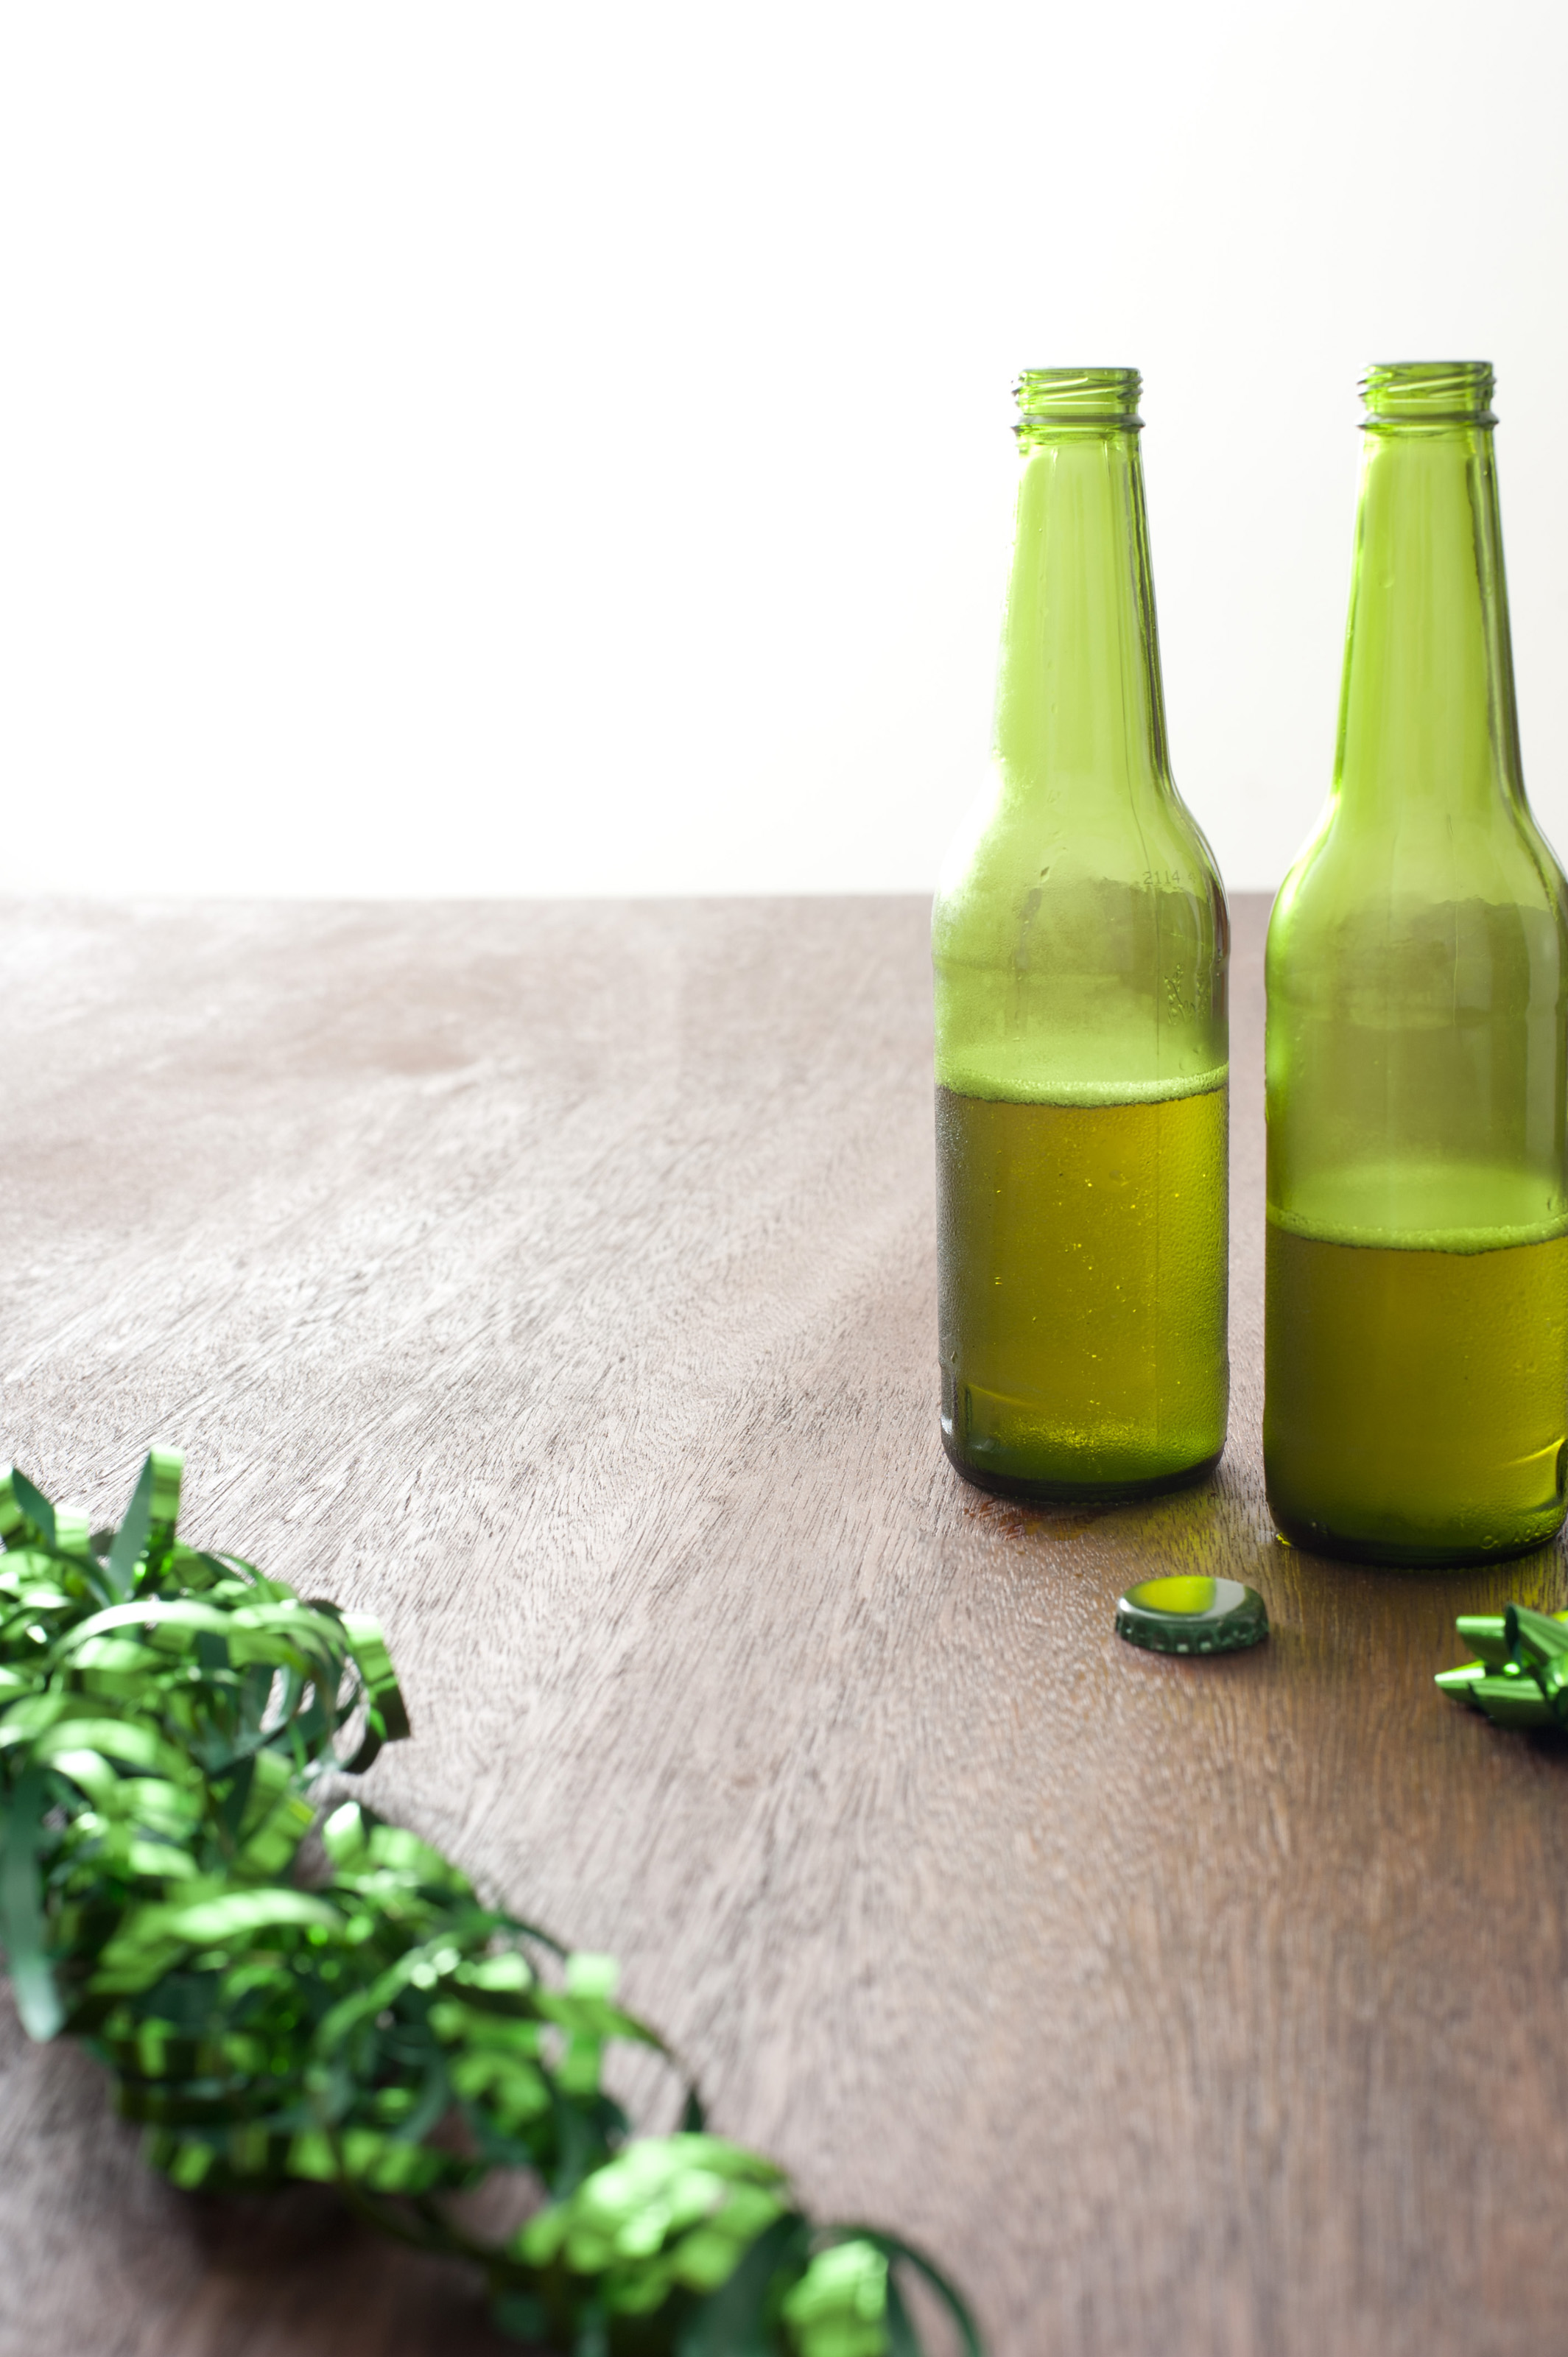 Free stock photo 12097 green ribbons and bottles of beer for Beer bottle picture frame